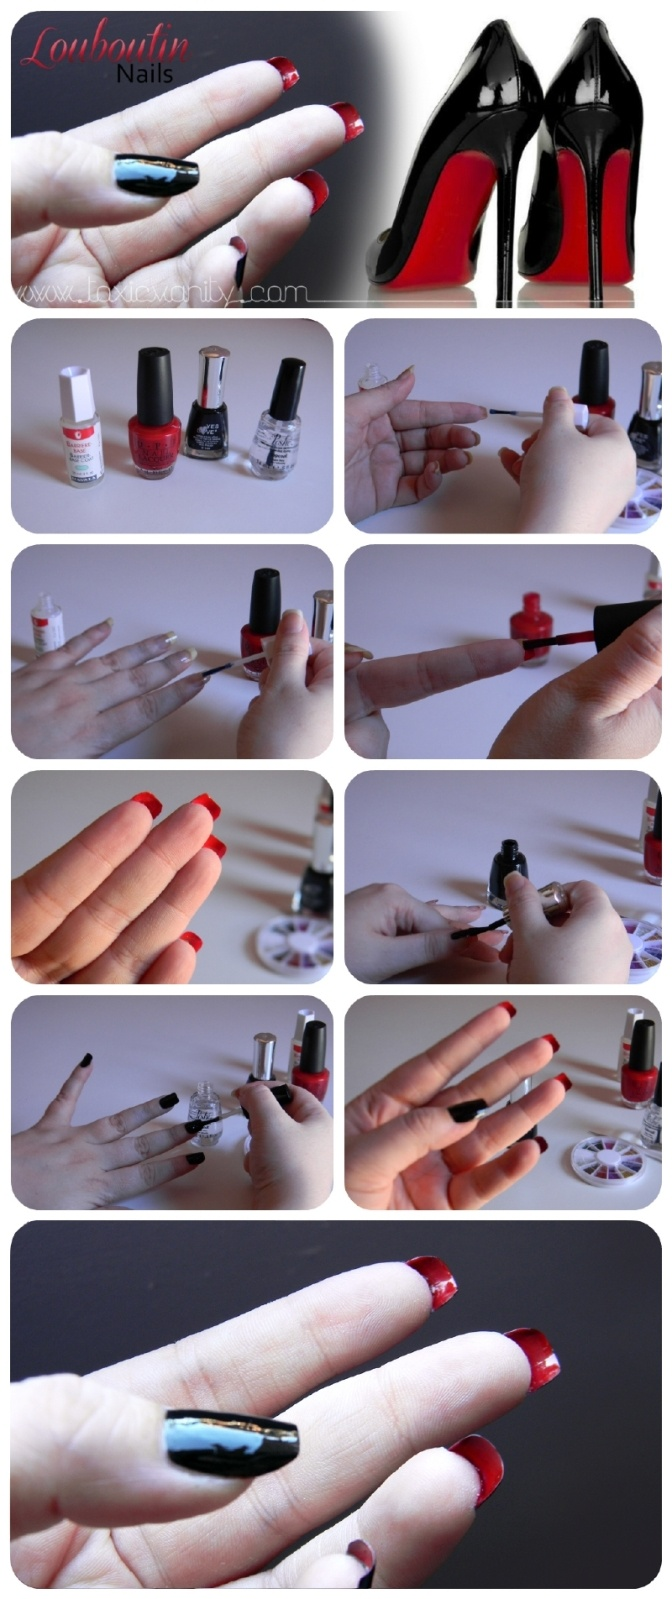 Toxic Vanity: DIY Louboutin Nails. Why have I never thought of this before?